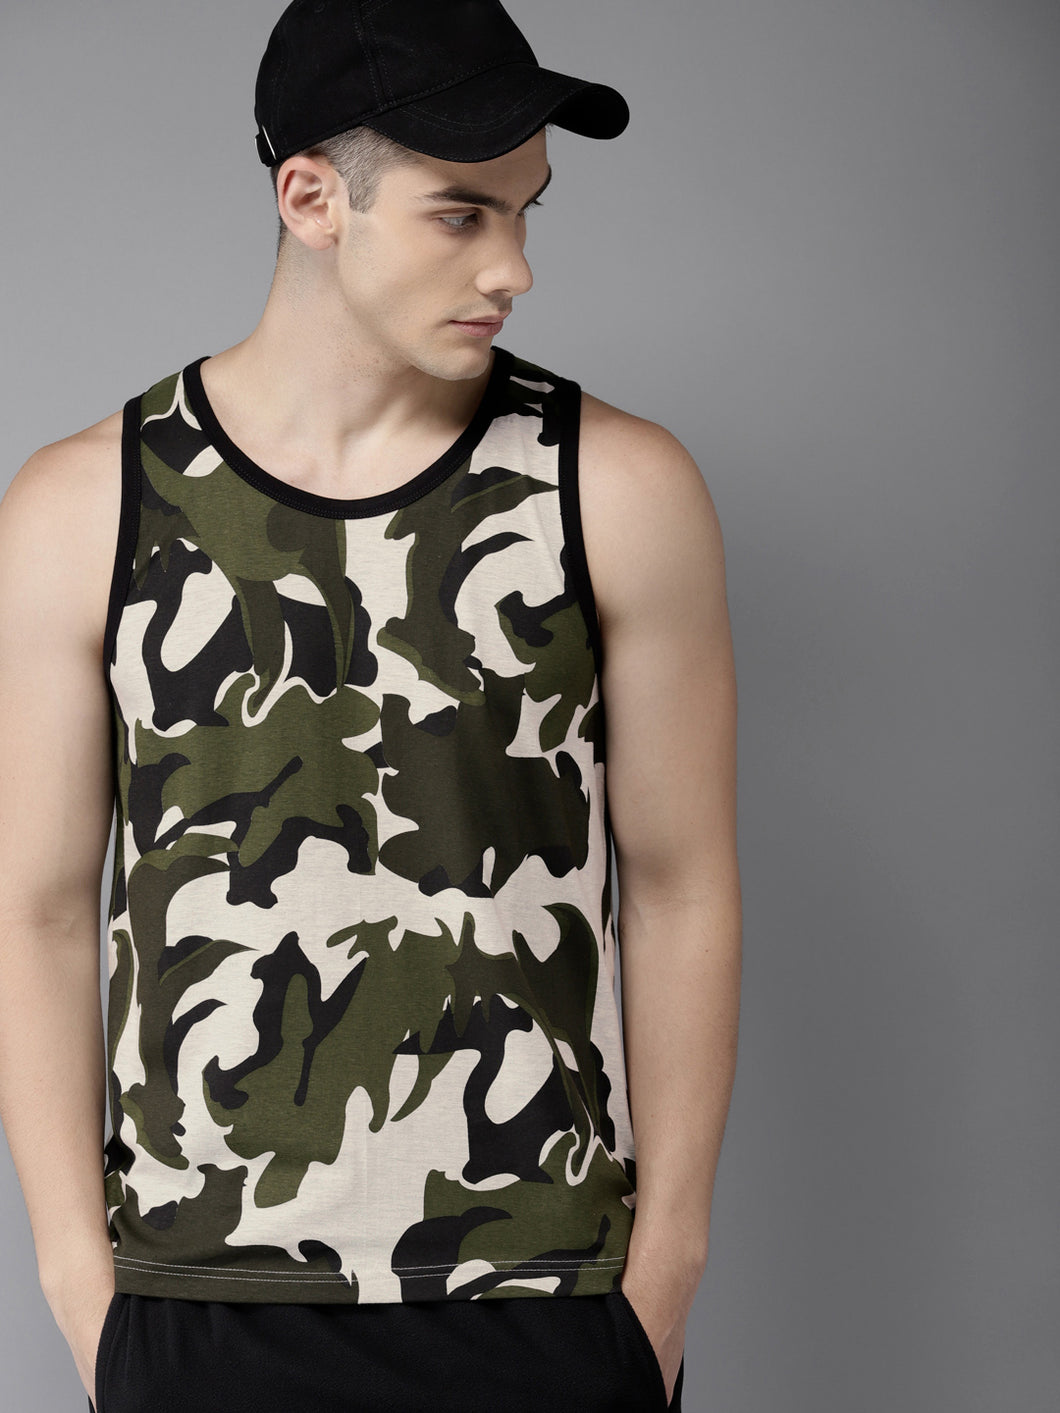 Contemporary Camouflage premium Tank Tee PRICE: Rs. 499 | Book for Rs. 31 only